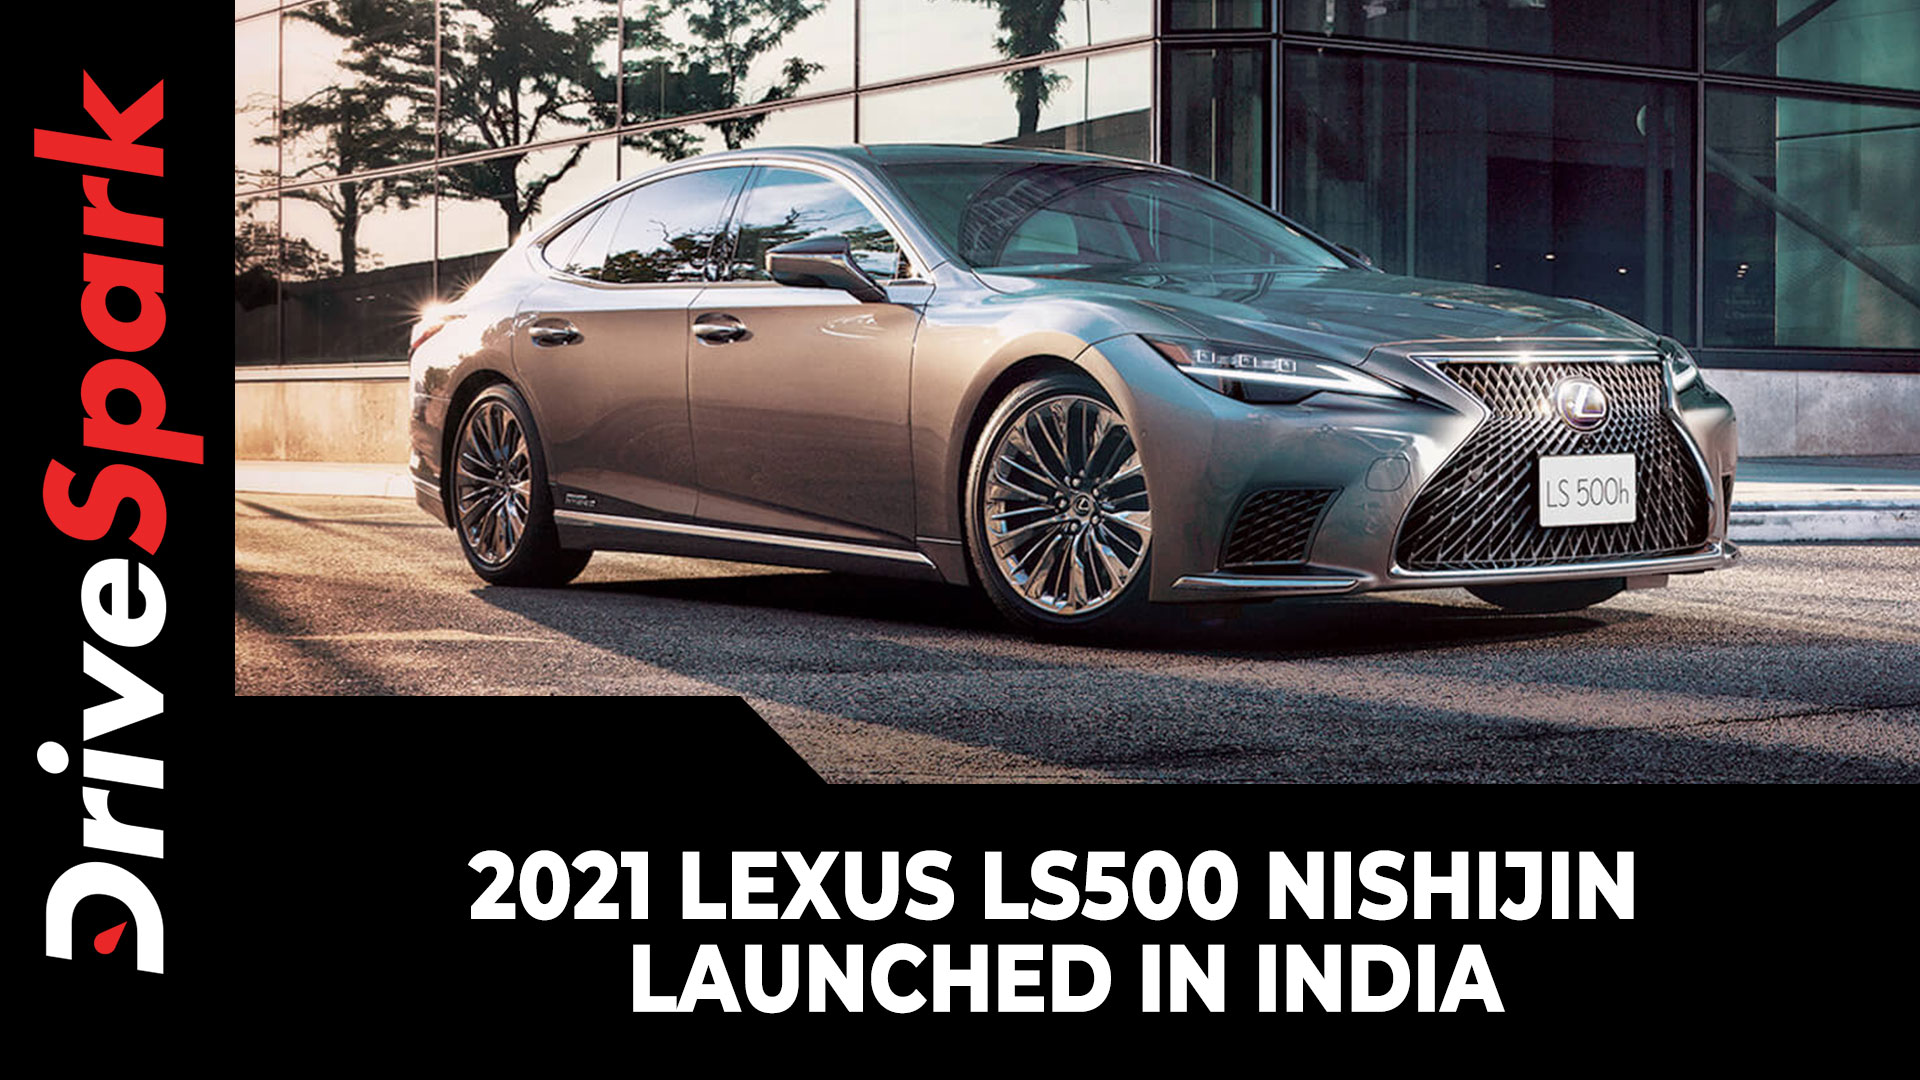 2021 Lexus LS500 Nishijin Launched In India | Prices, Specs, Features & Other Details